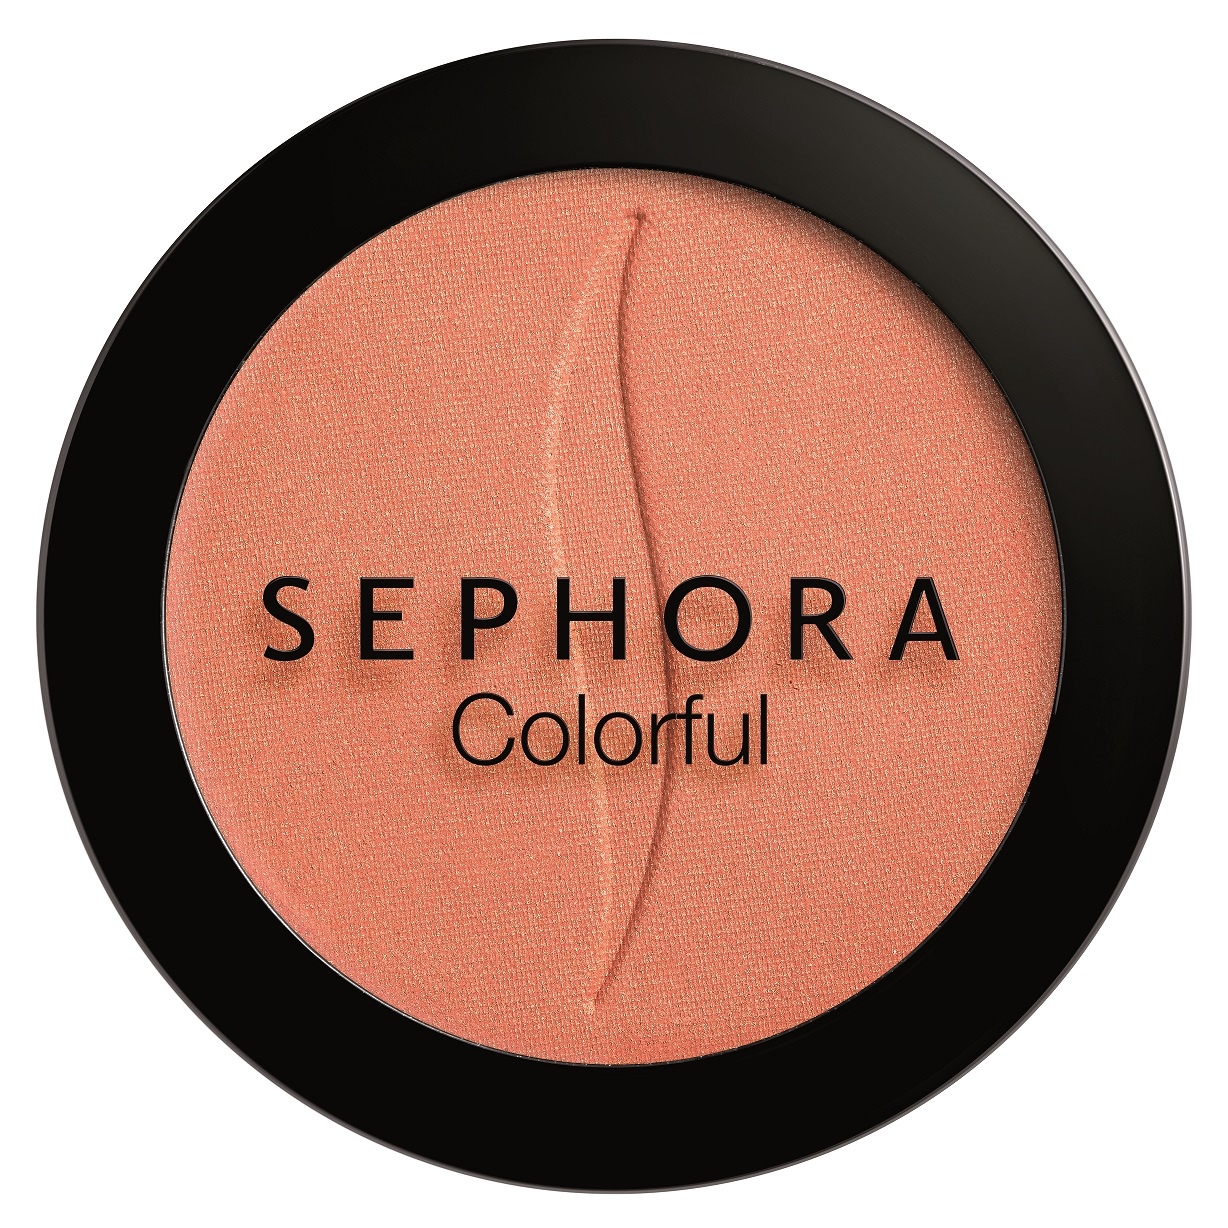 sephora-colorful-15-so-euphoric